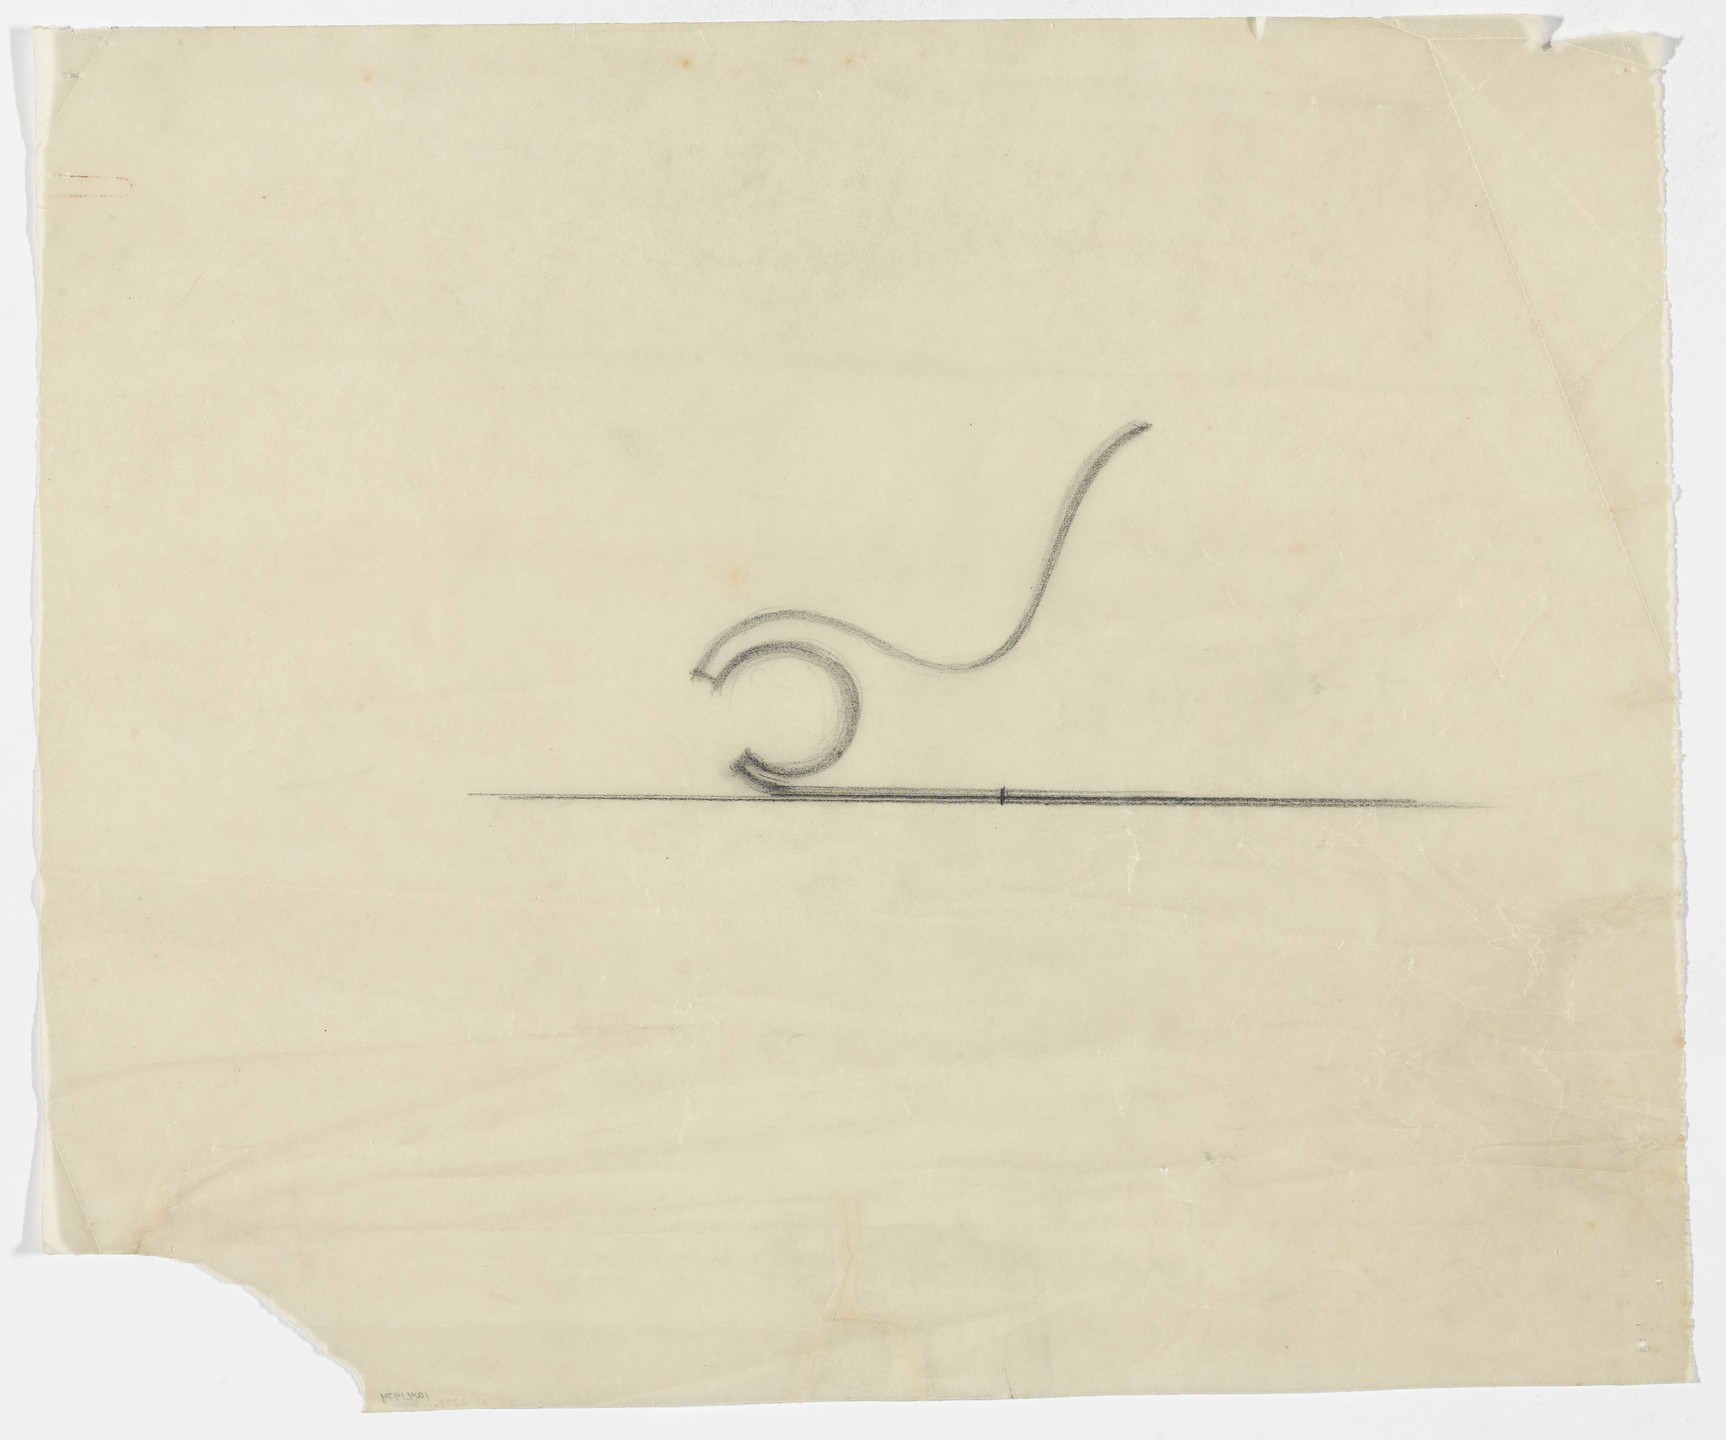 Ludwig Mies van der Rohe. Spring Chair without Arms (Elevation sketch). 1933-1934